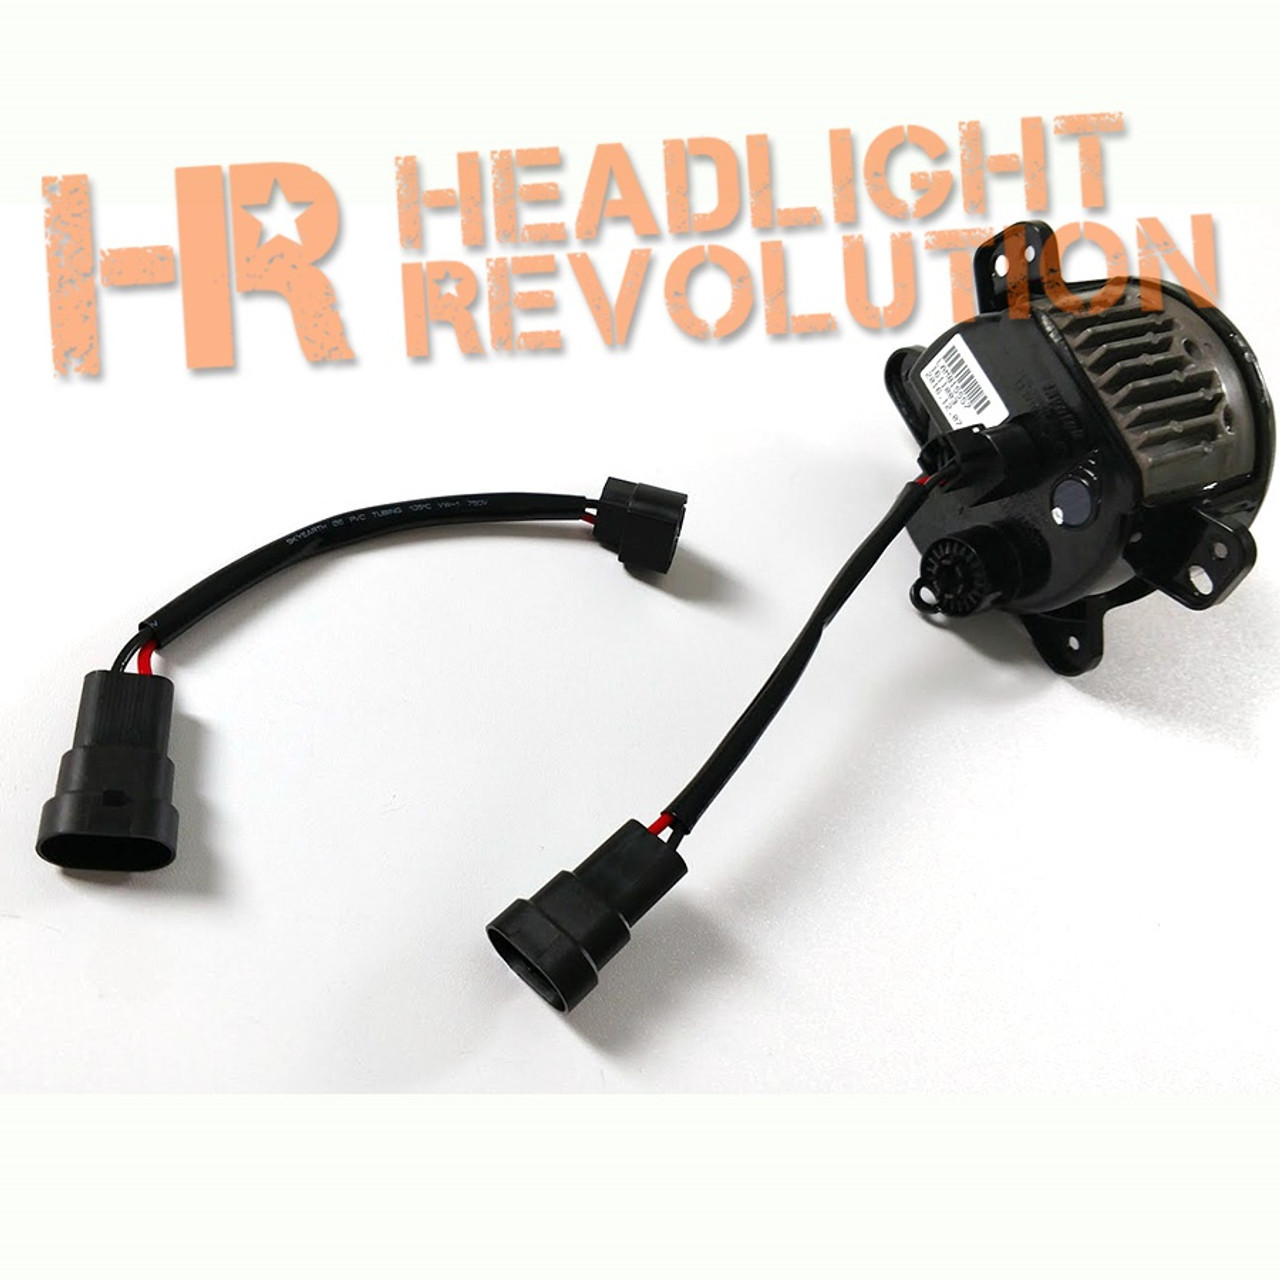 headlight revolution 9005 male to 2504 adapter wire harnesses on vw beetle headlight  [ 900 x 900 Pixel ]